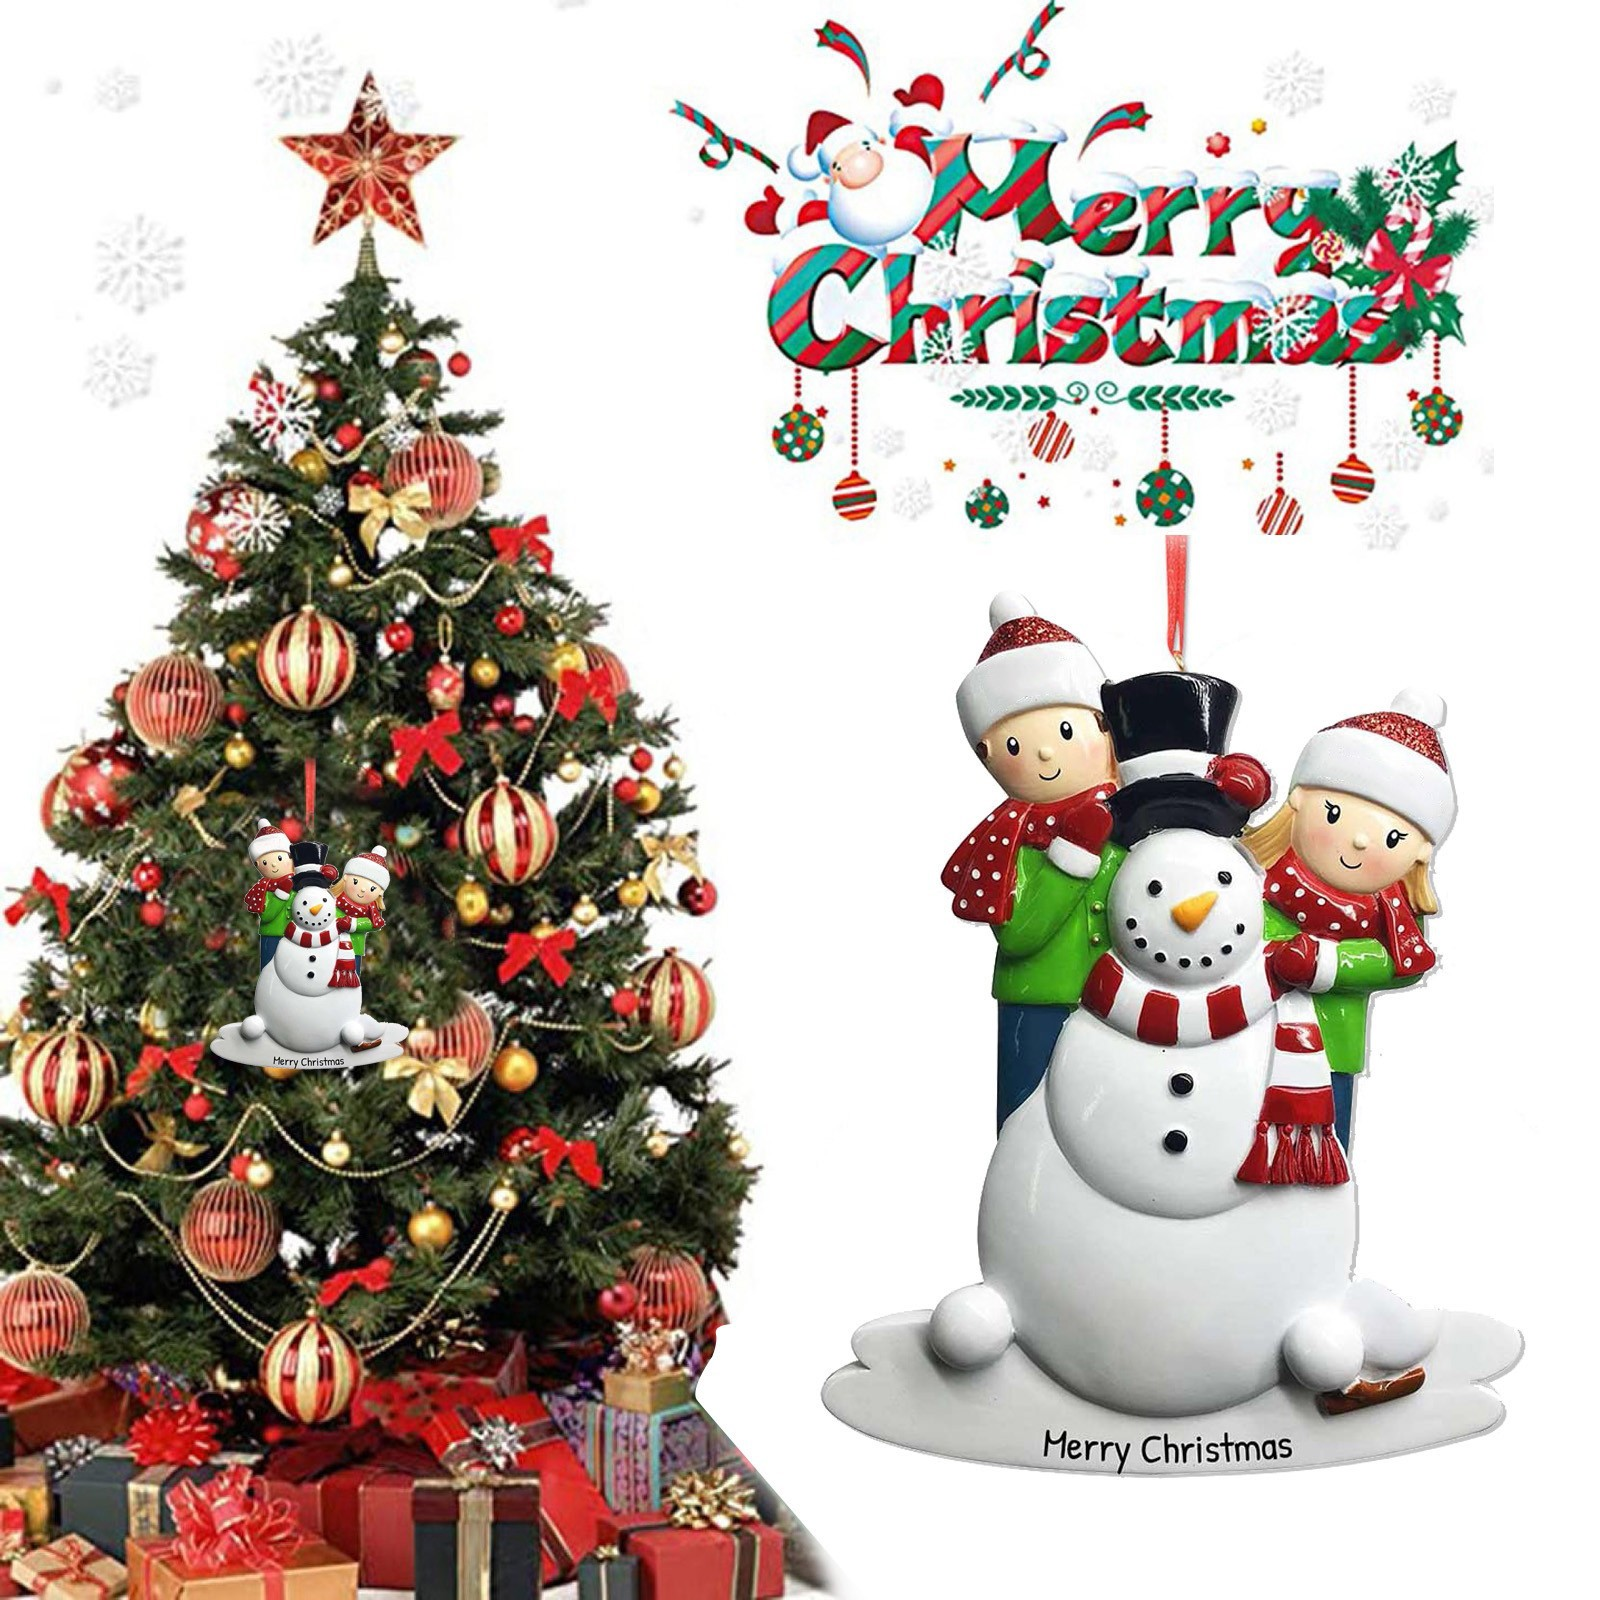 2020 Christmas Ornaments Hanging Decoration Gift Product Personalized Family Christmas Tree Pendant Hanging Decoration